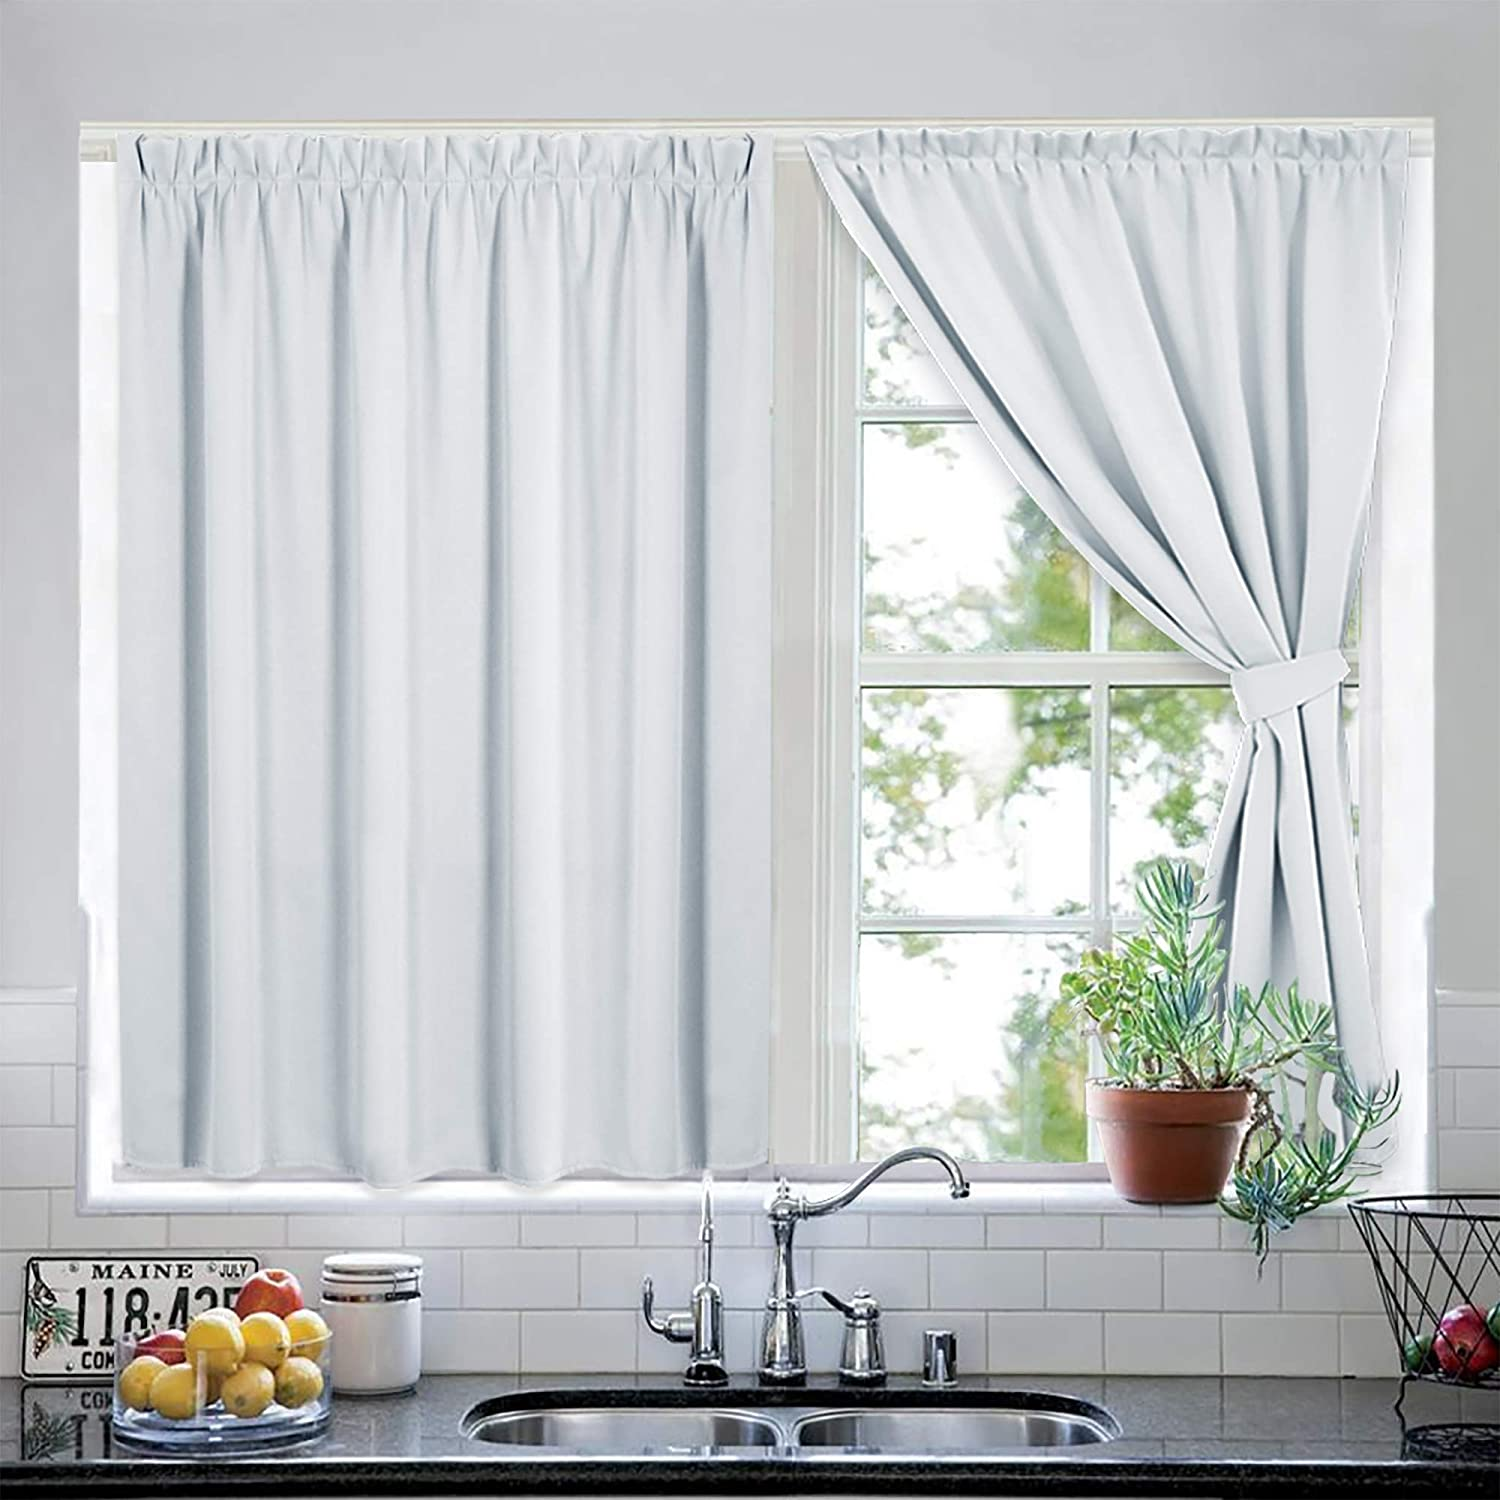 RYB HOME White Privacy Curtains for Bedroom, Room Darkening Curtains for Living Room, Draped Curtains for No Rod Track Windows Treatment Come with 2 Tie Backs, 40 W x 63 L, Greyish White, 2 Pieces